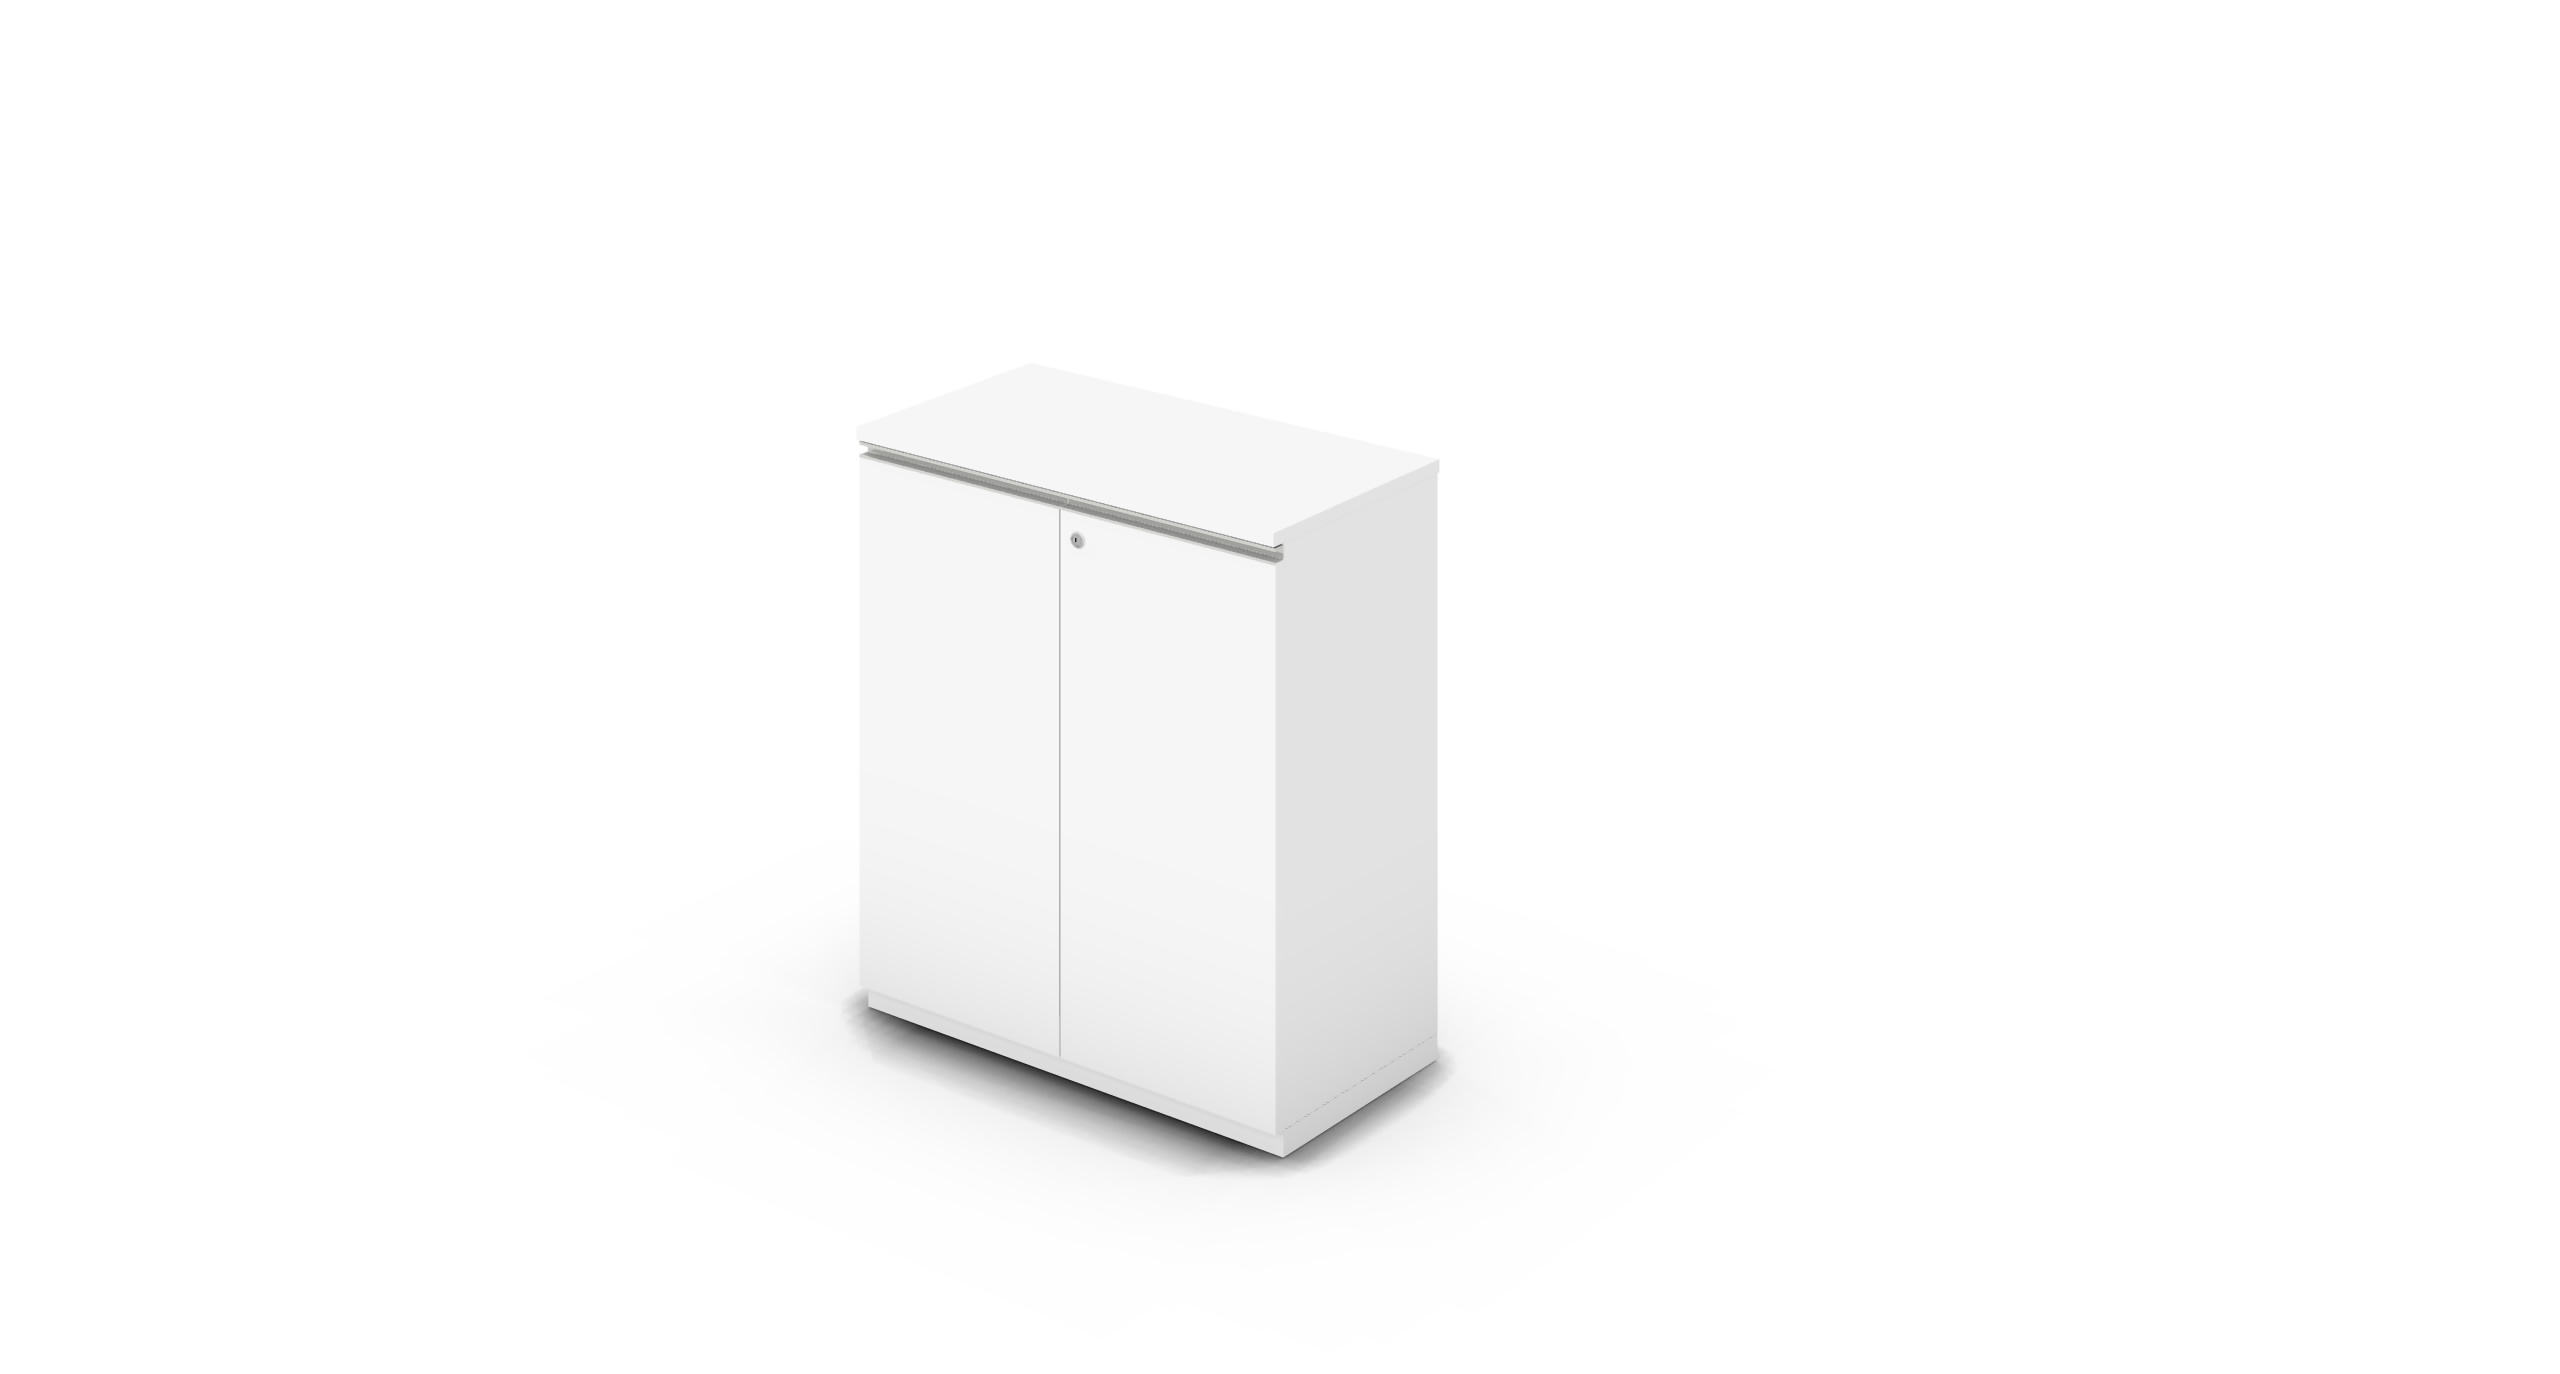 Cabinet_900x450x1125_HD_White_Rail_WithCylinder